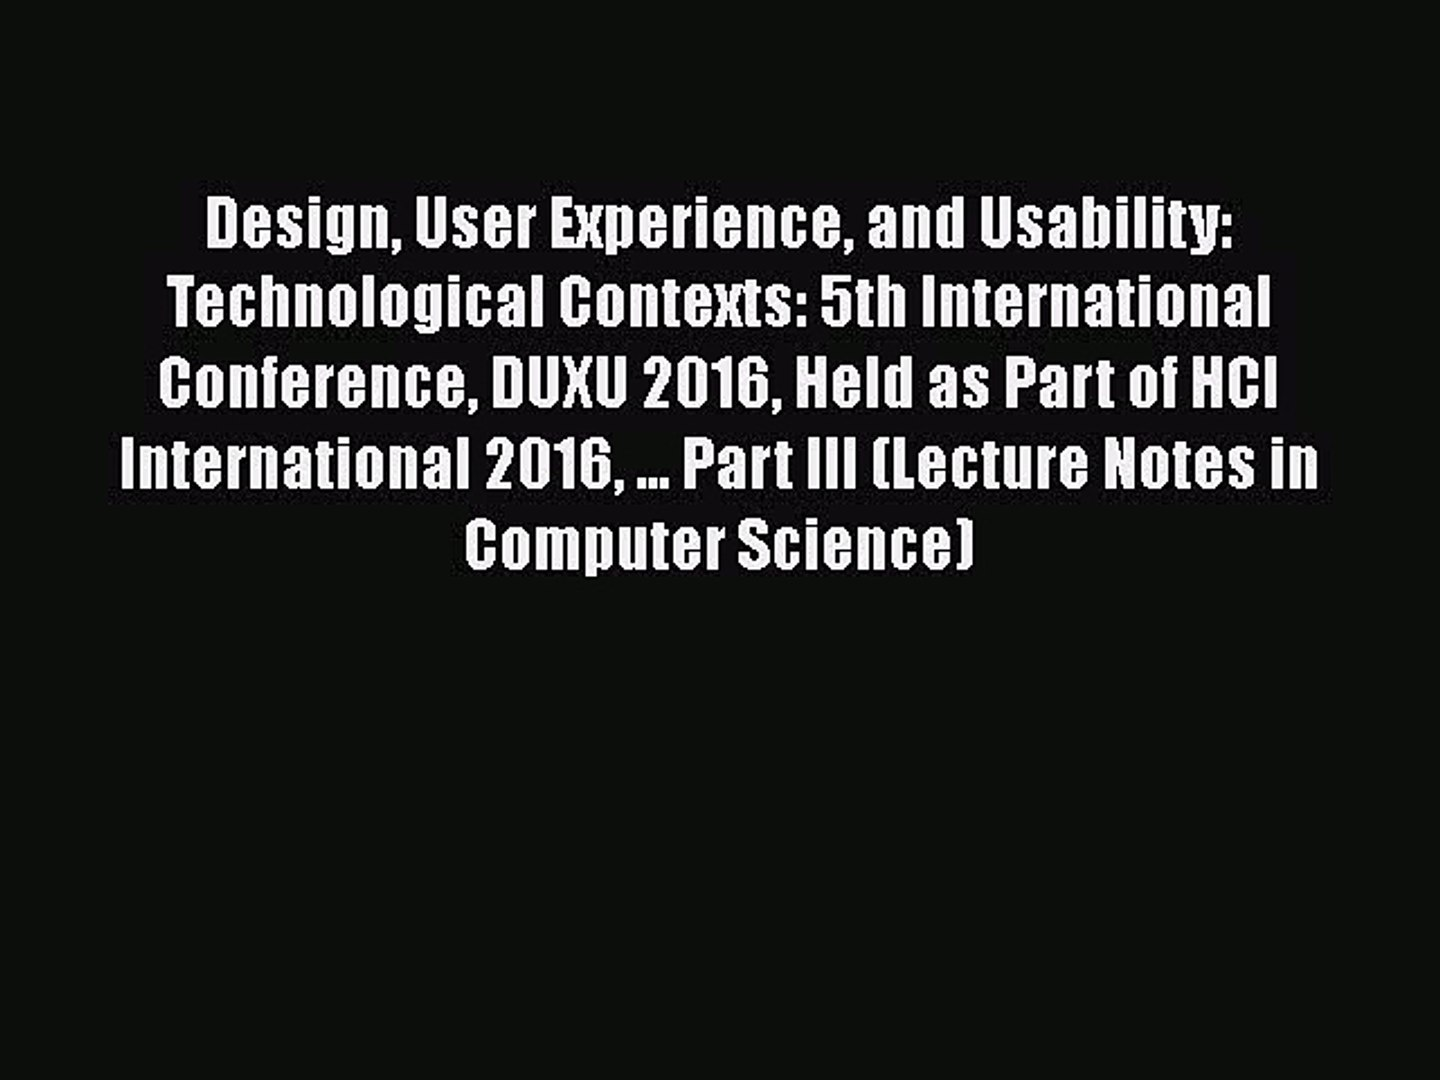 Pdf Design User Experience And Usability Technological Contexts 5th International Conference Video Dailymotion